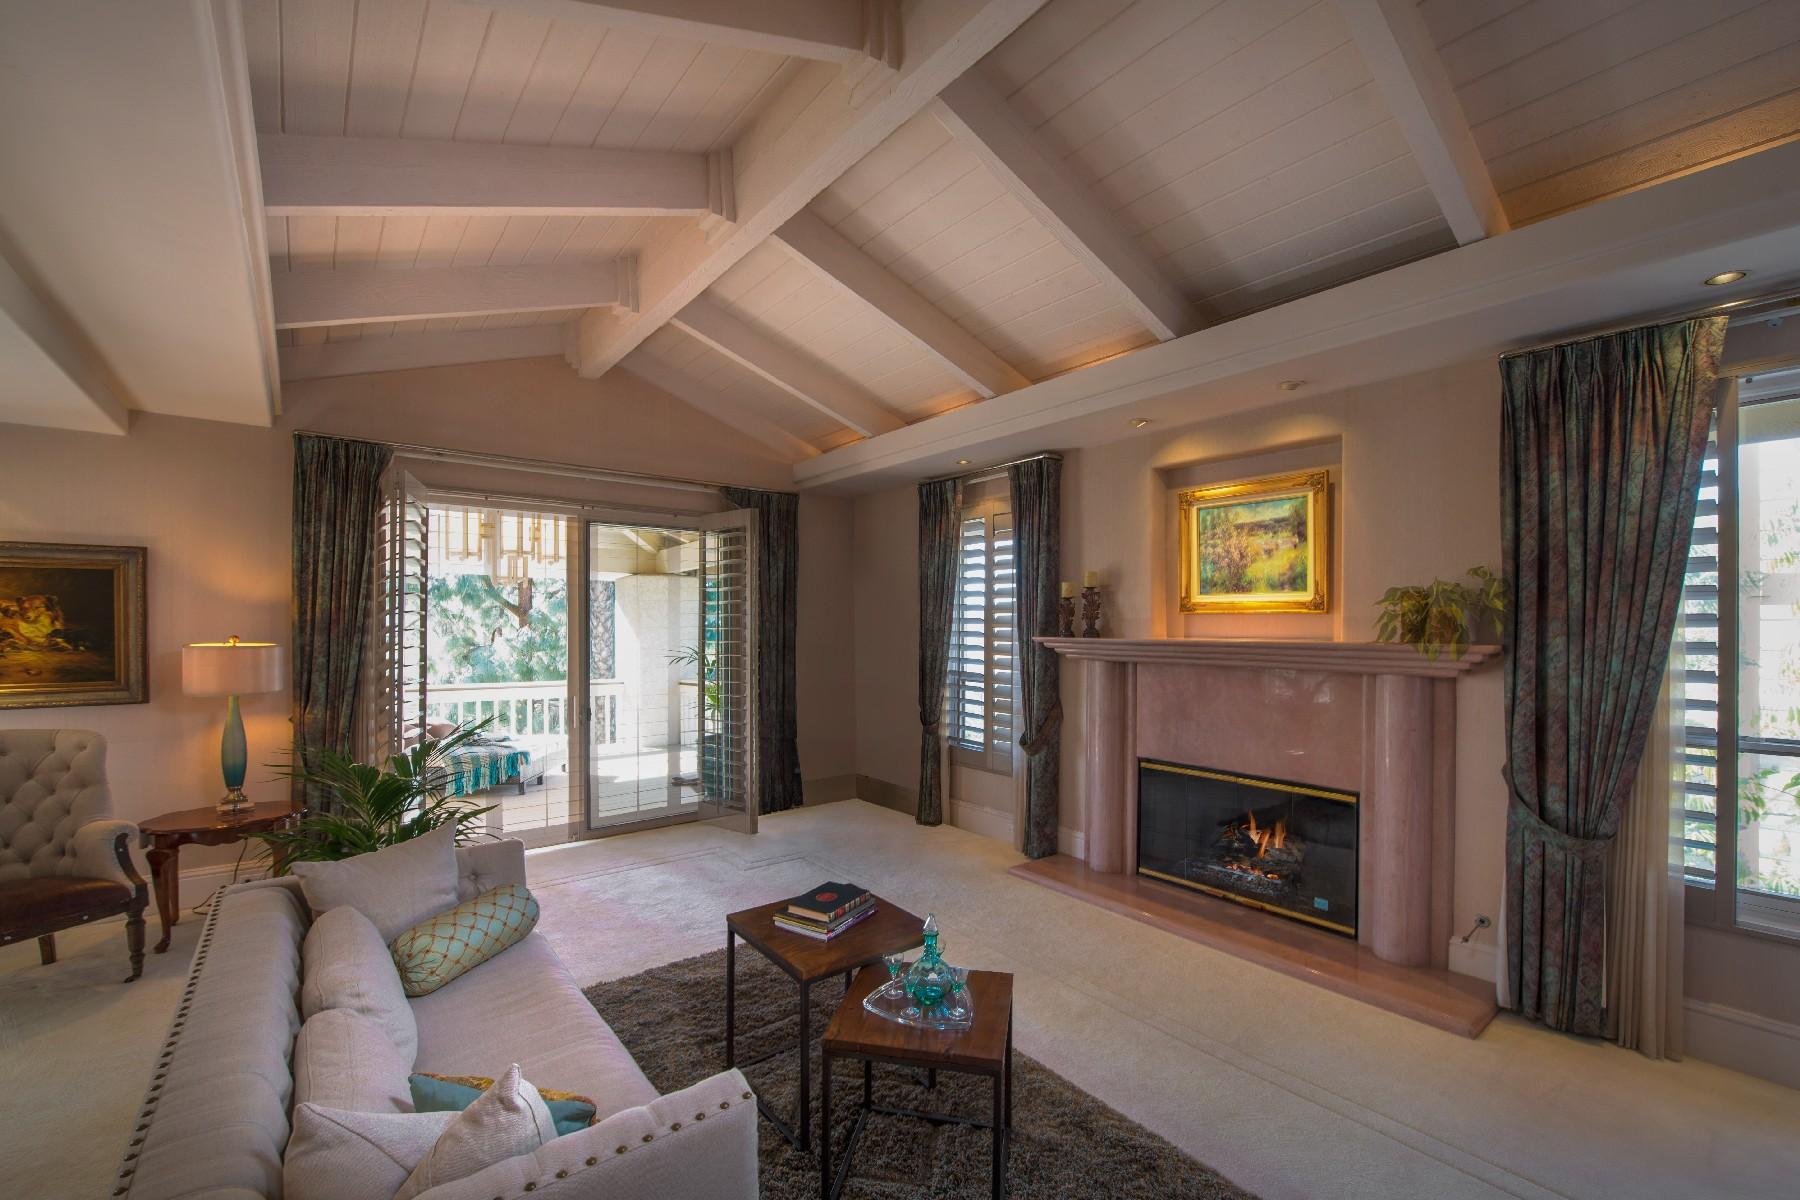 Additional photo for property listing at 4611 La Noria  Rancho Santa Fe, Californie 92067 États-Unis